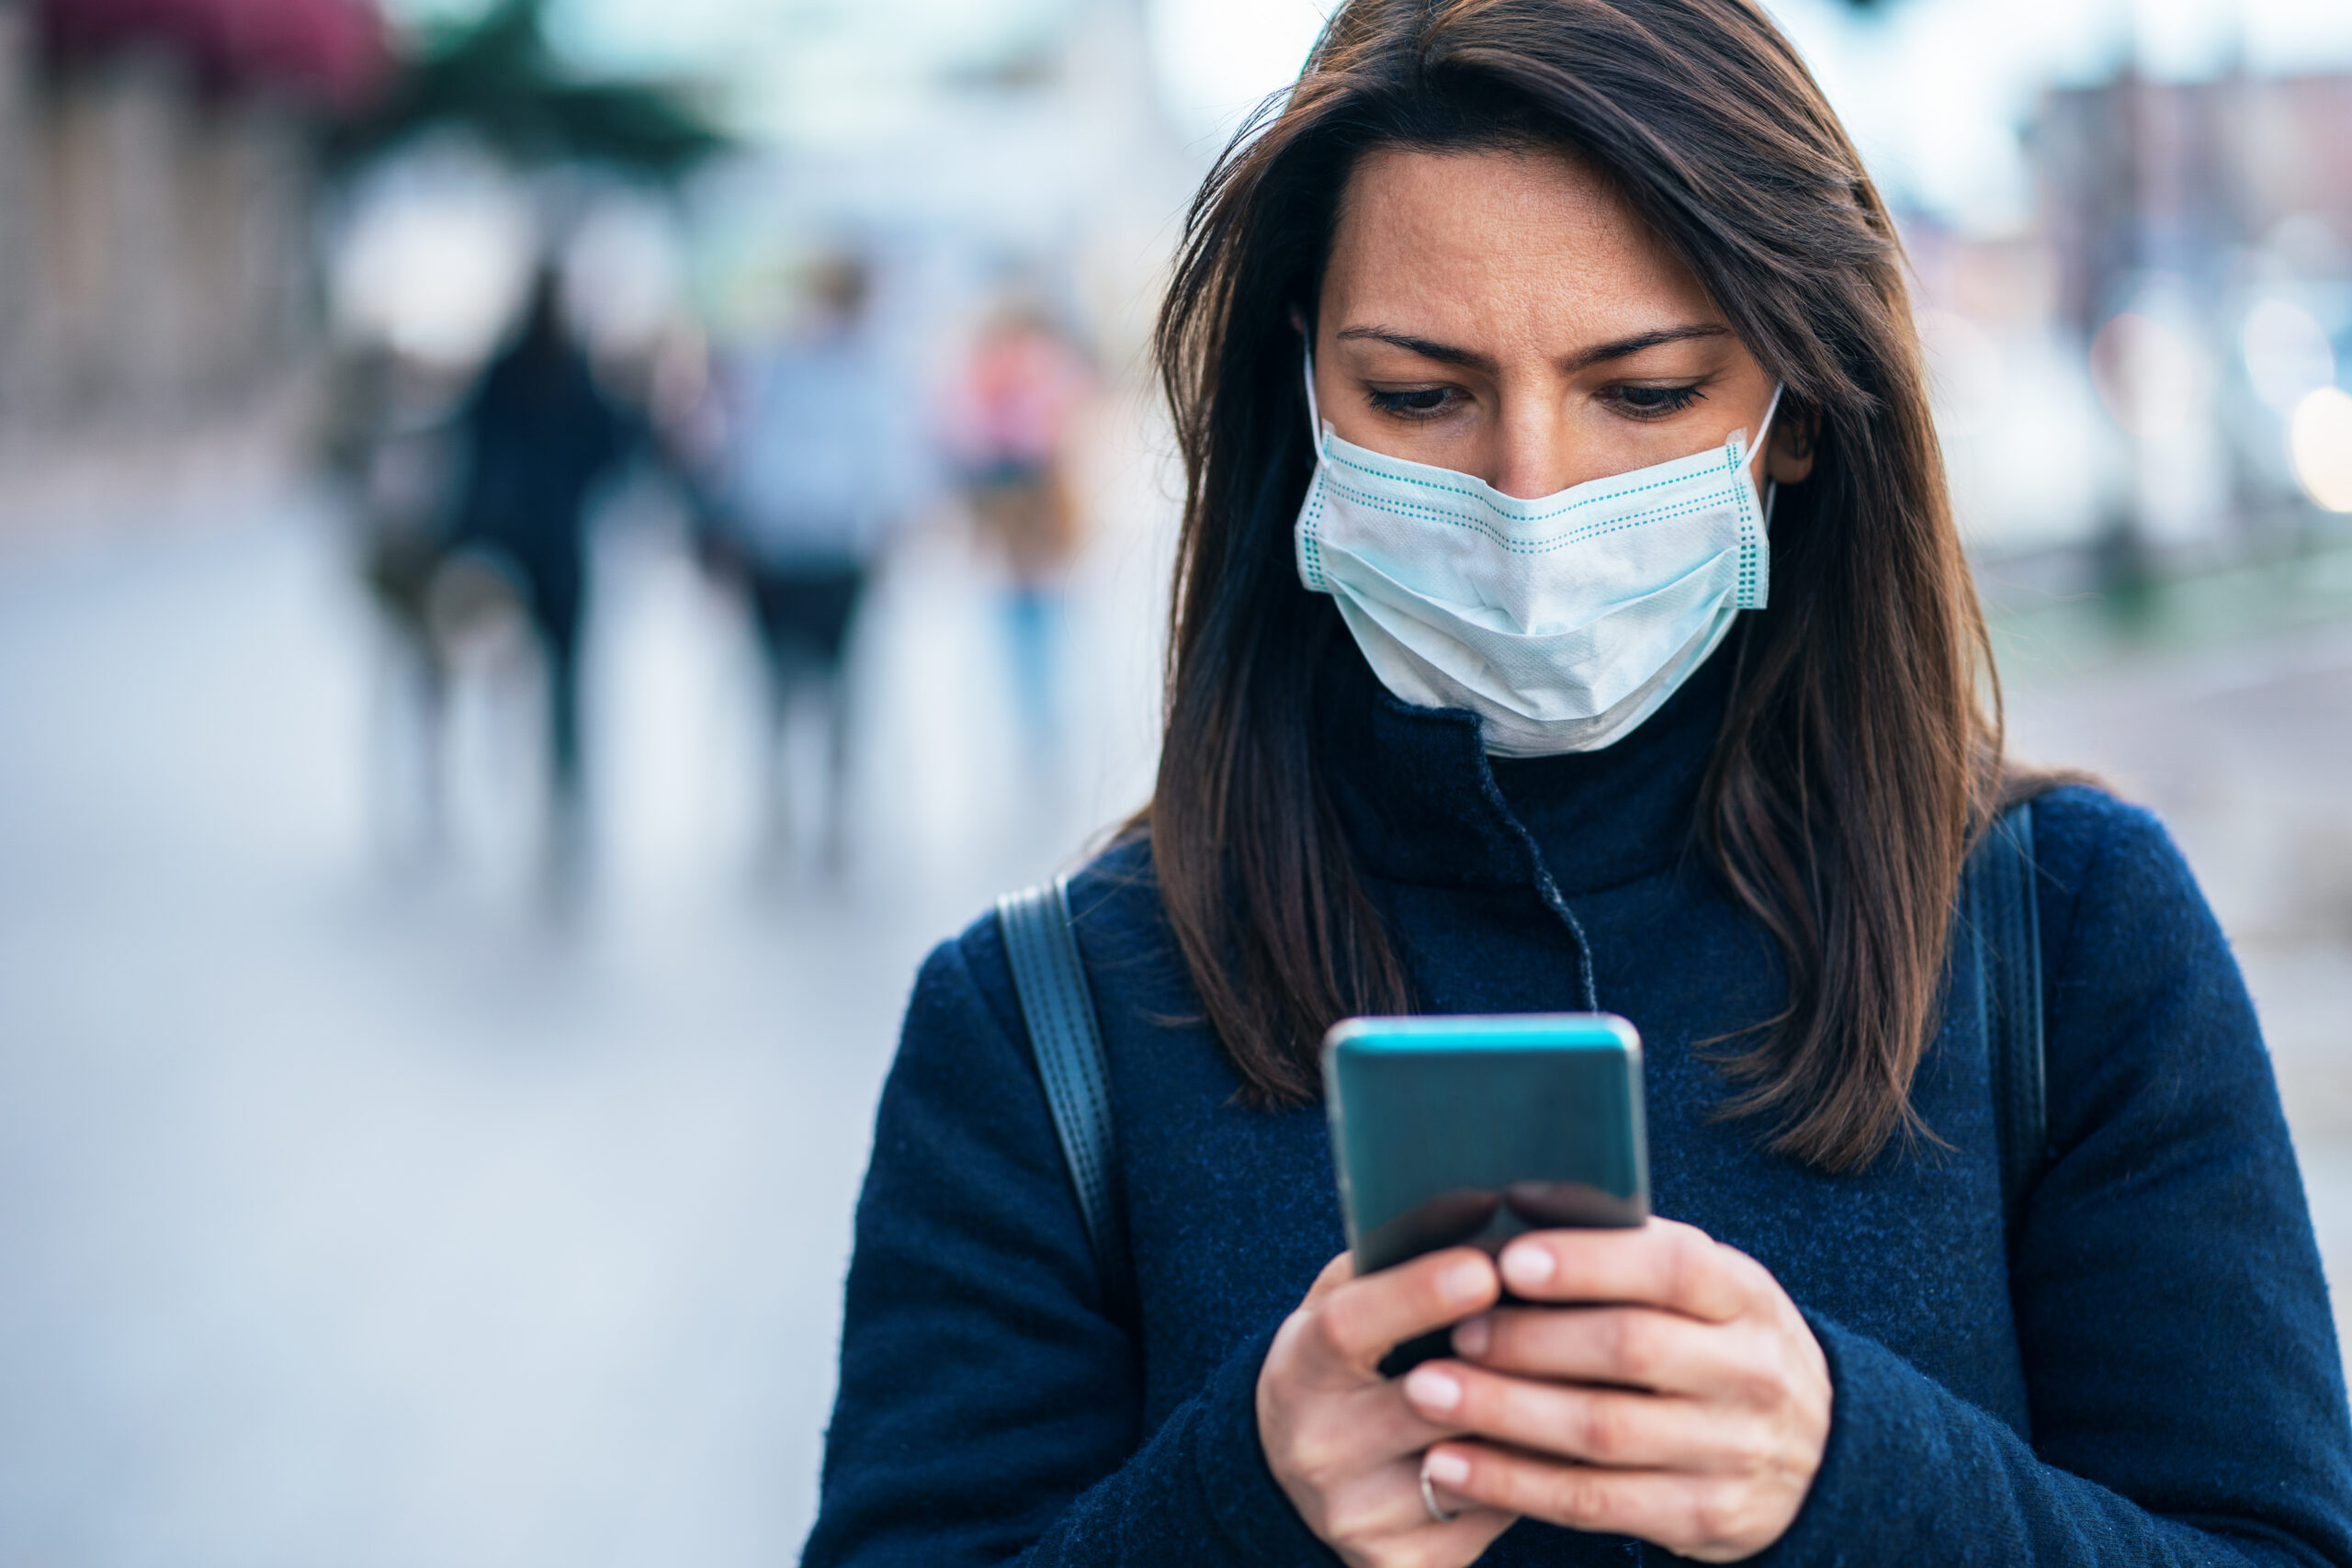 Are you using a safety app? You should